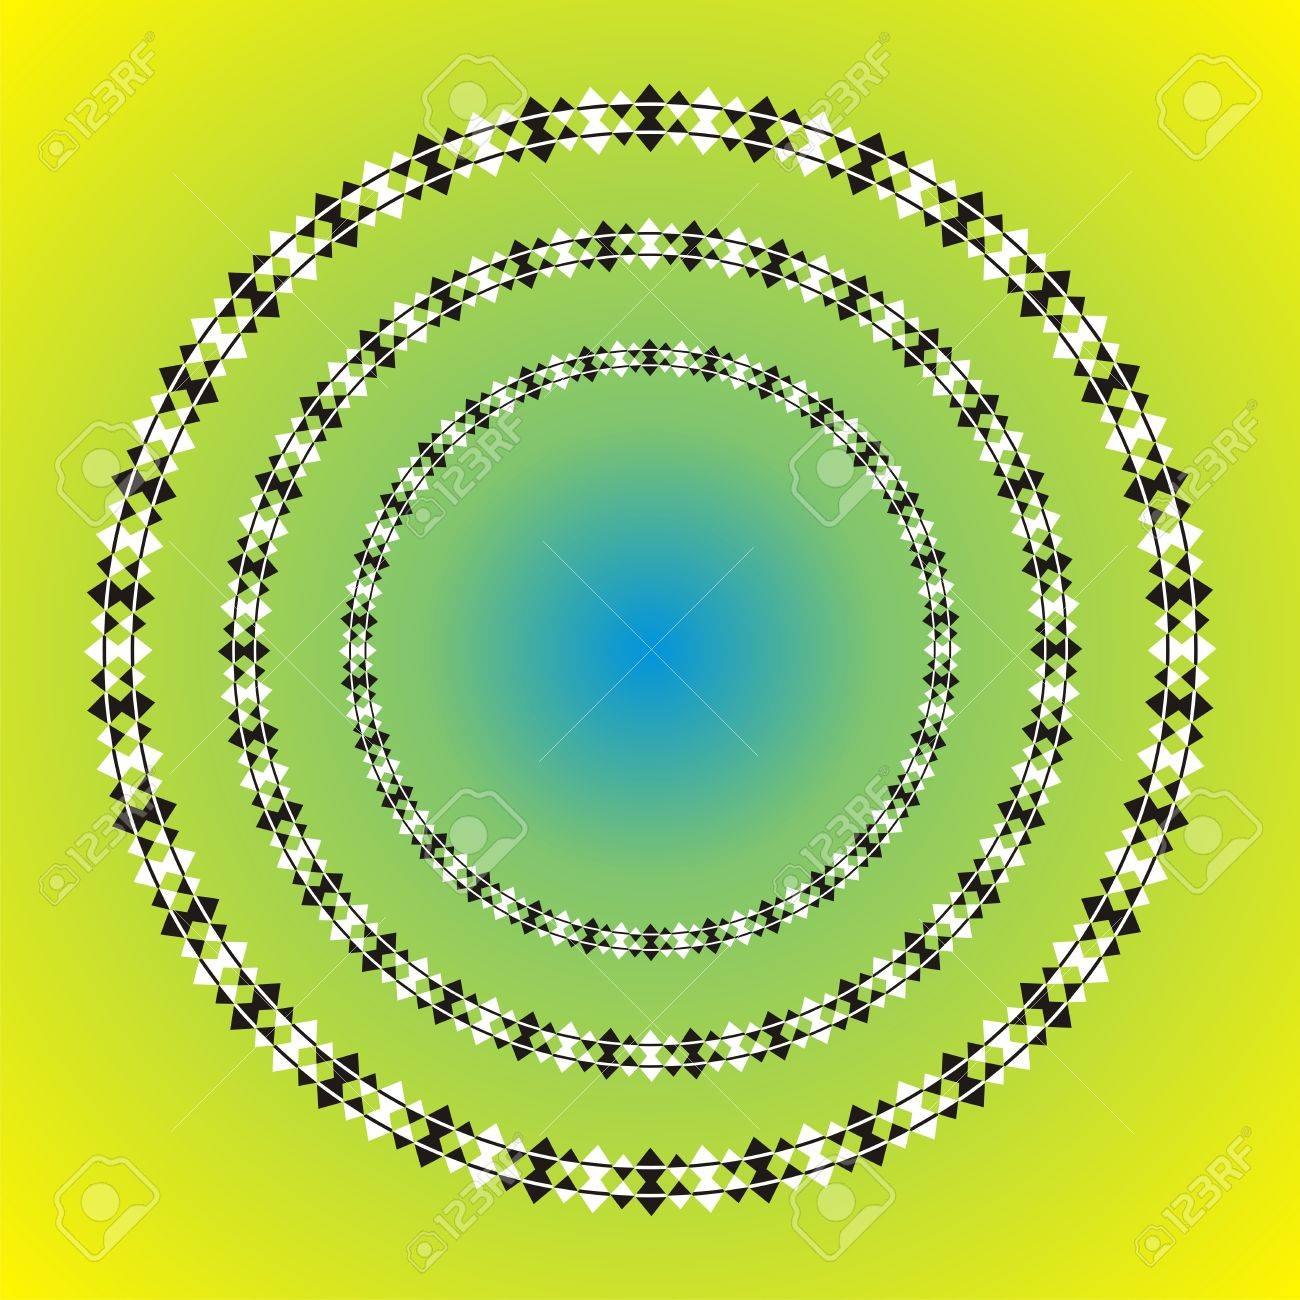 Spiral or round illusion Stock Vector - 16685187